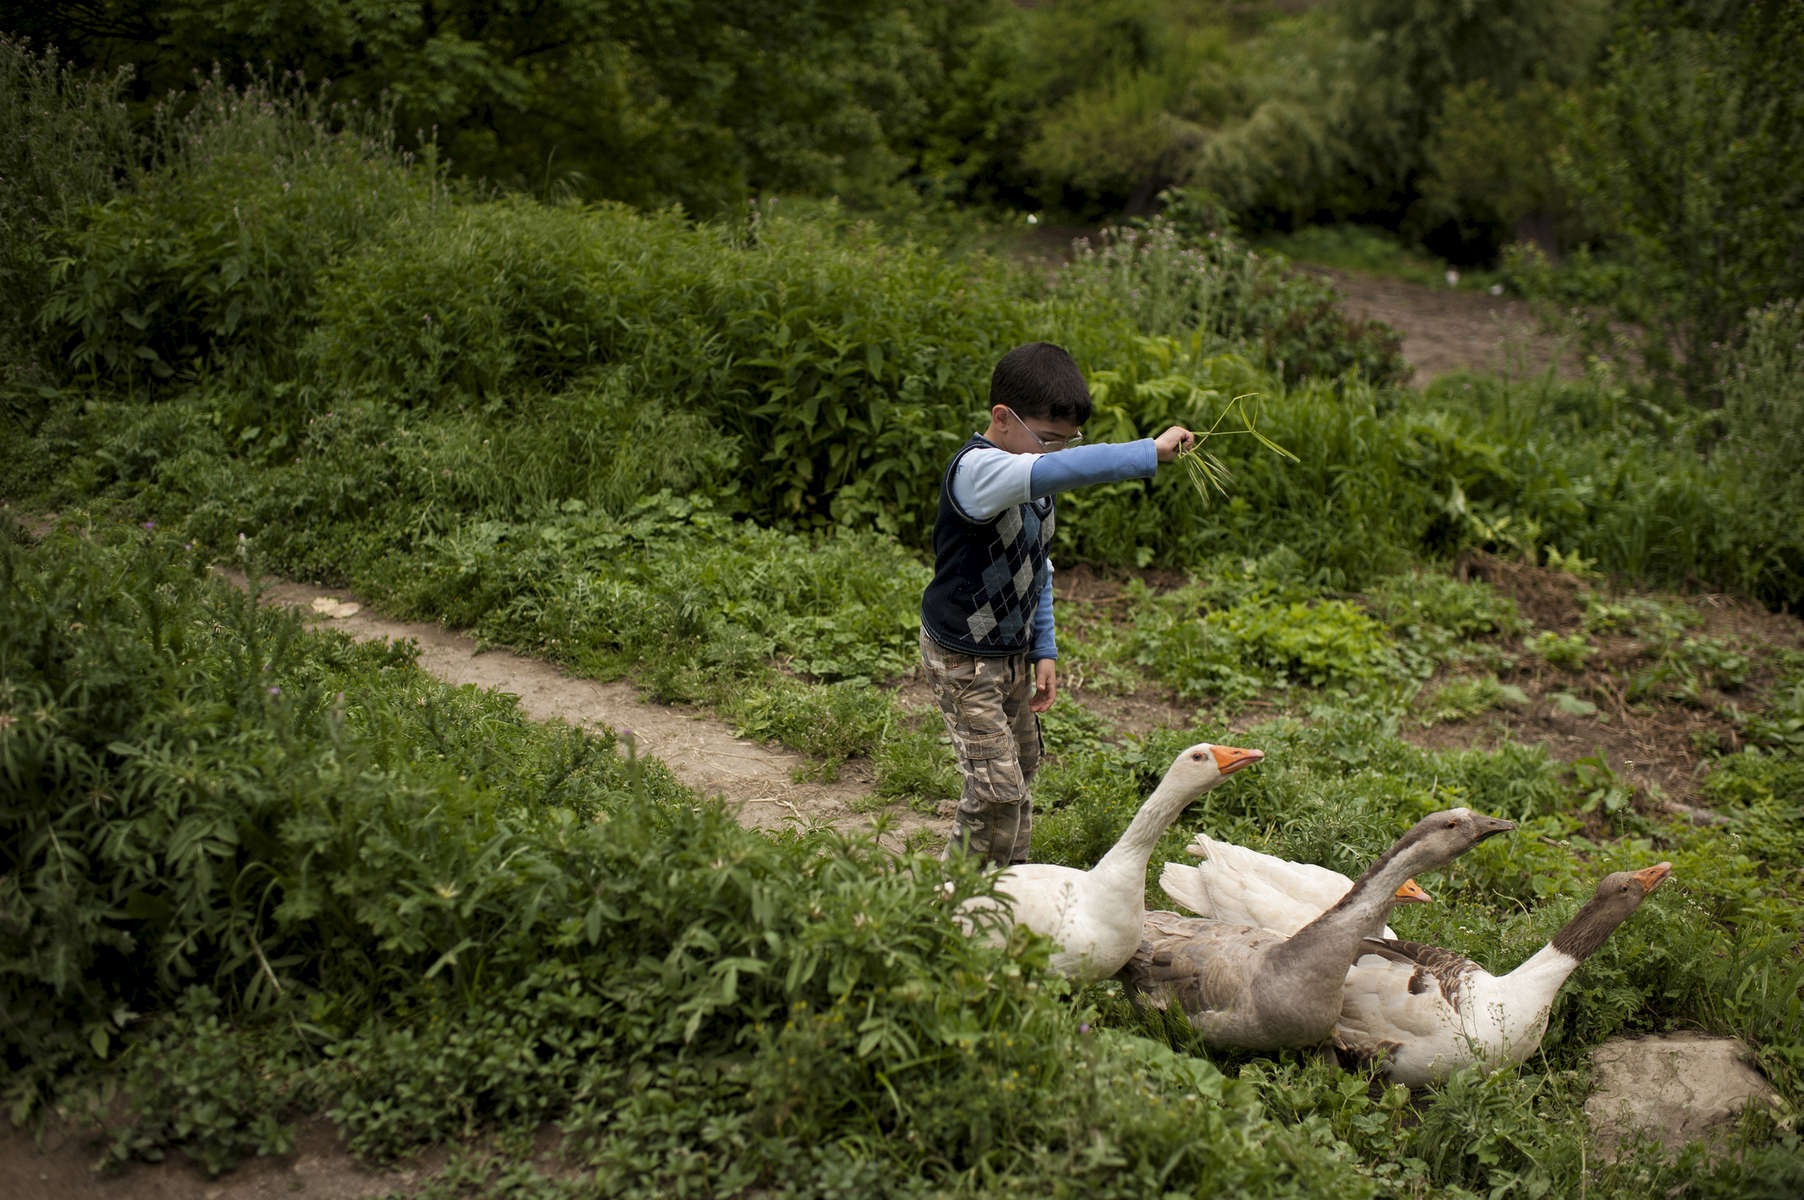 The son of a beneficiary (NAME TK) herds geese back to his family's home in Harav village. NAMES TK